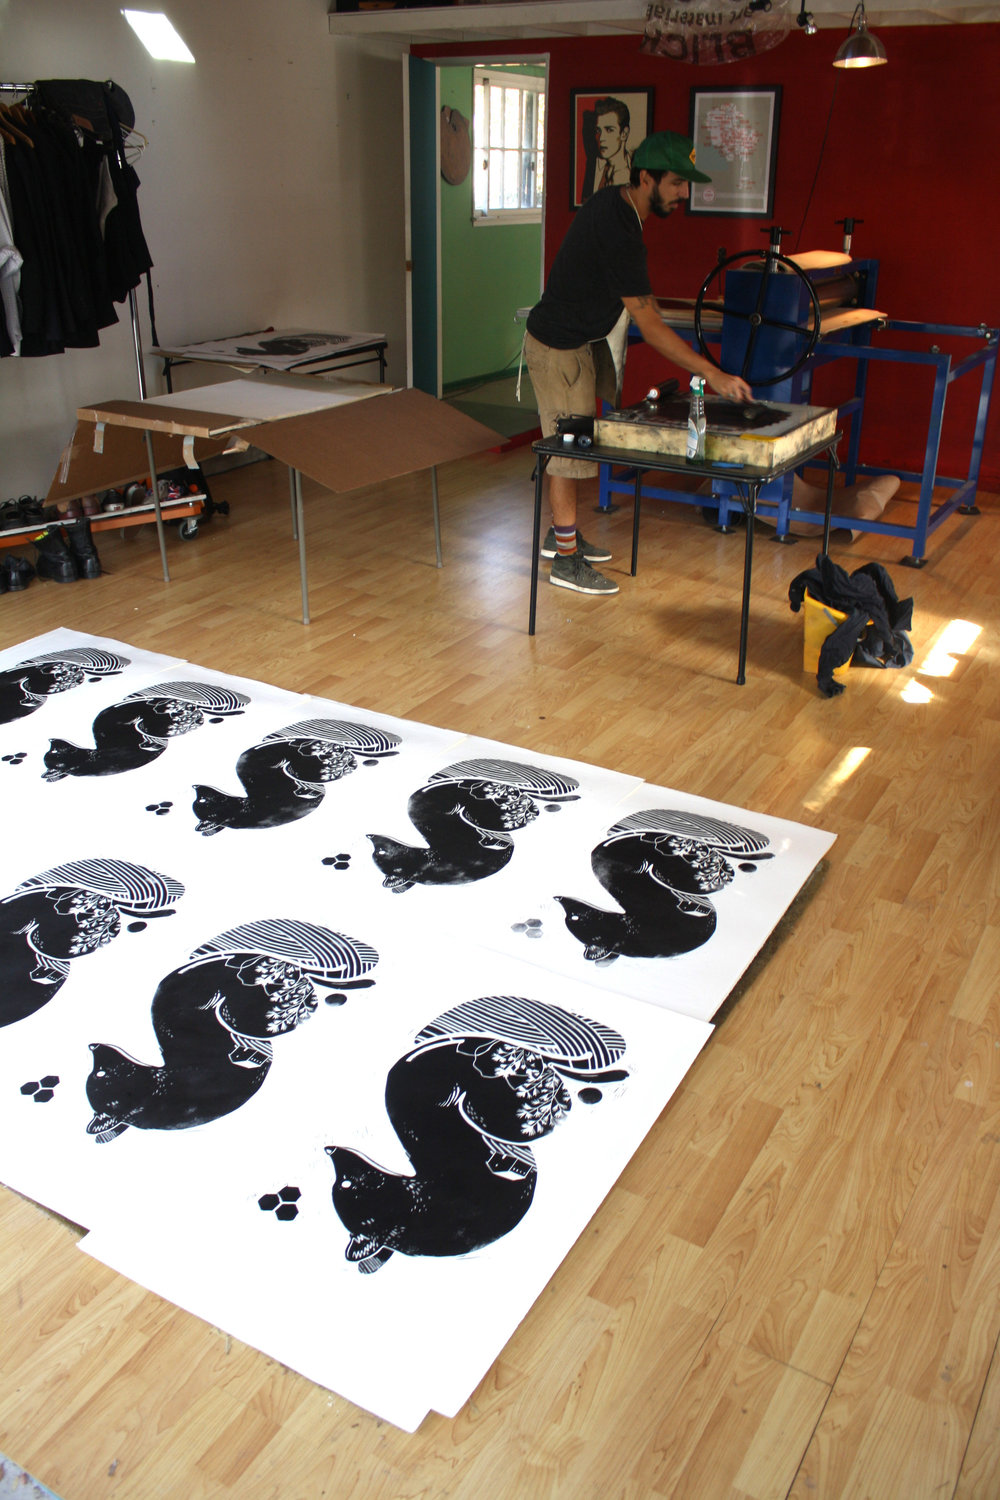 Artist Mateu Velasco Prints a Series of Block Prints - Spring 2014